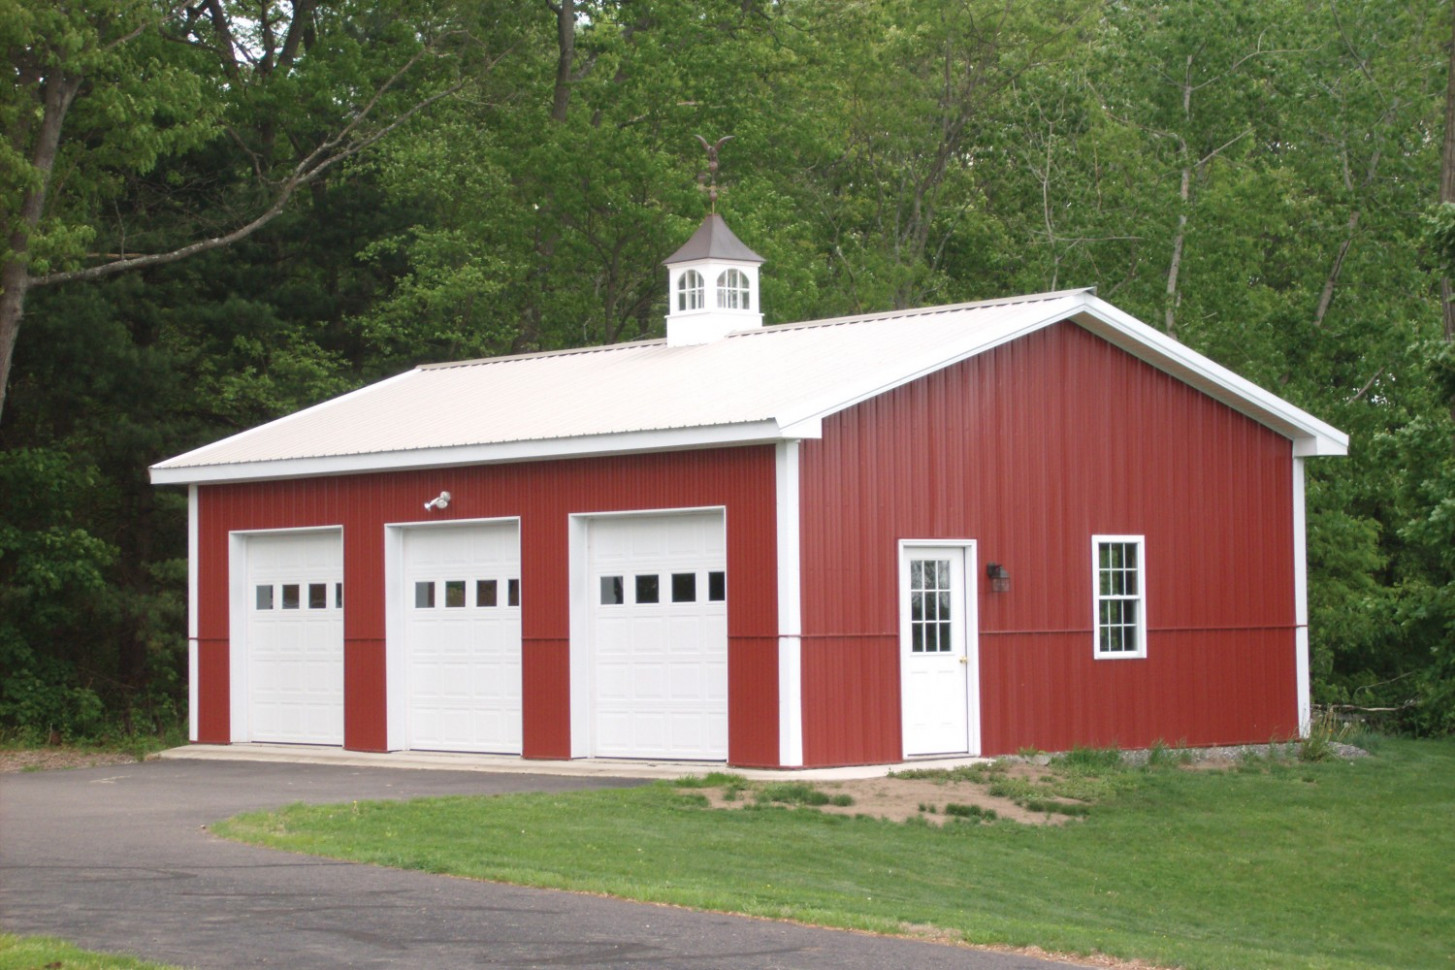 Pole Building Photos: The Barn Yard & Great Country Garages Pole Barn Vs Carport Garage